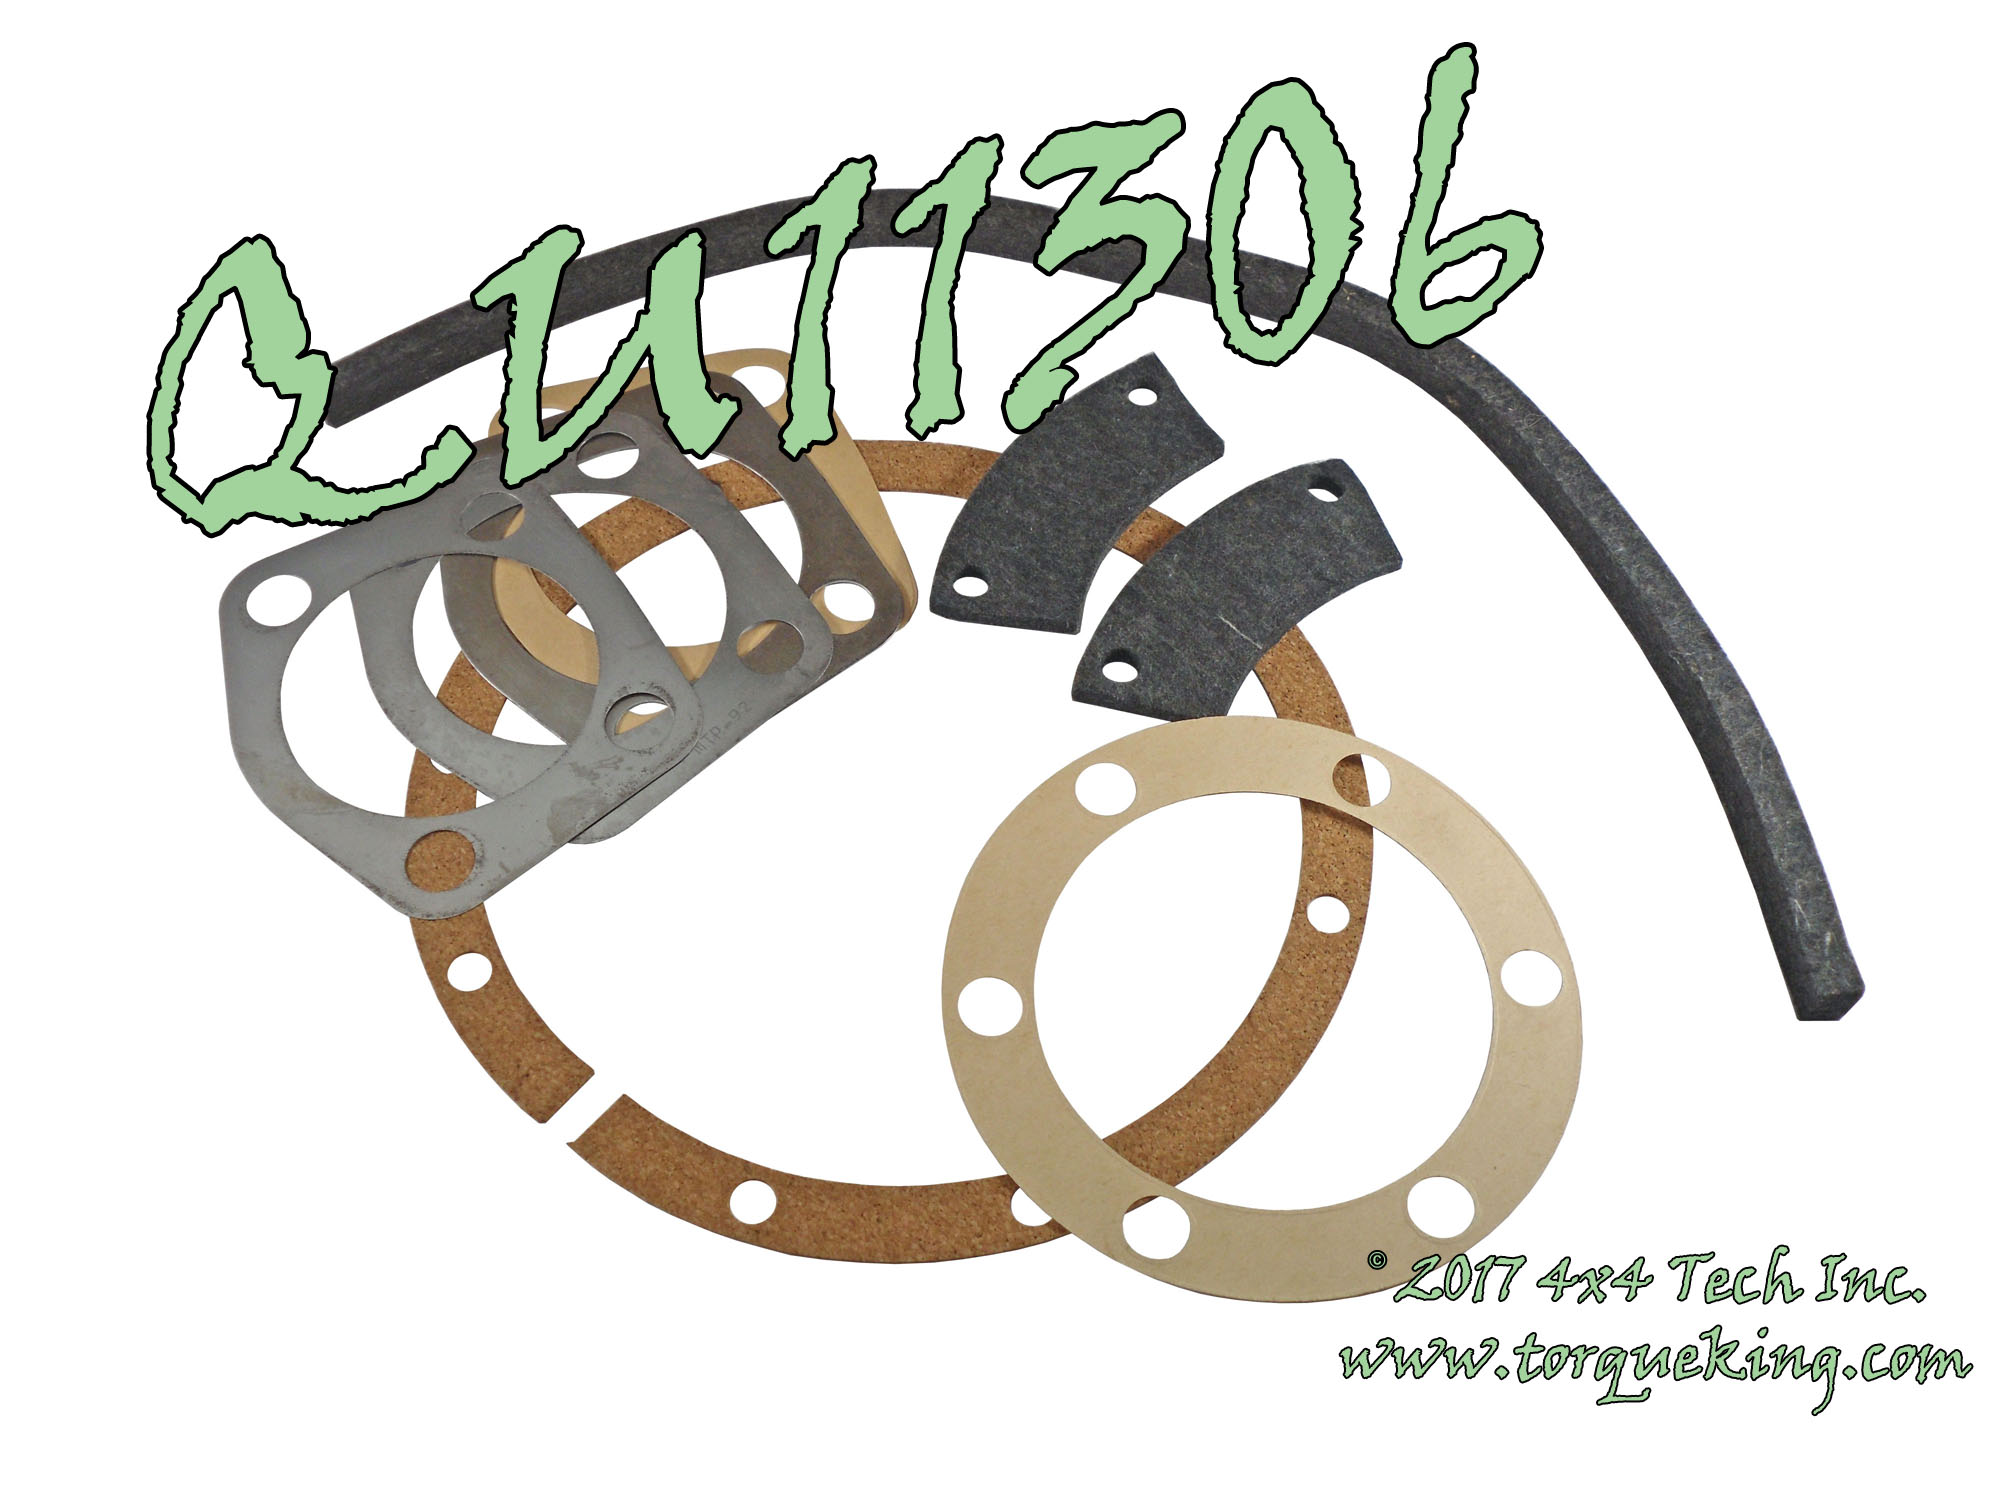 Qu11306 Torque King 4x4 Dodge Power Wagon Front Axle Steering Knuckle Seal Gasket And Shim Kit For 1 Side Of 1946 1978 Civilian Ton Including Export Models